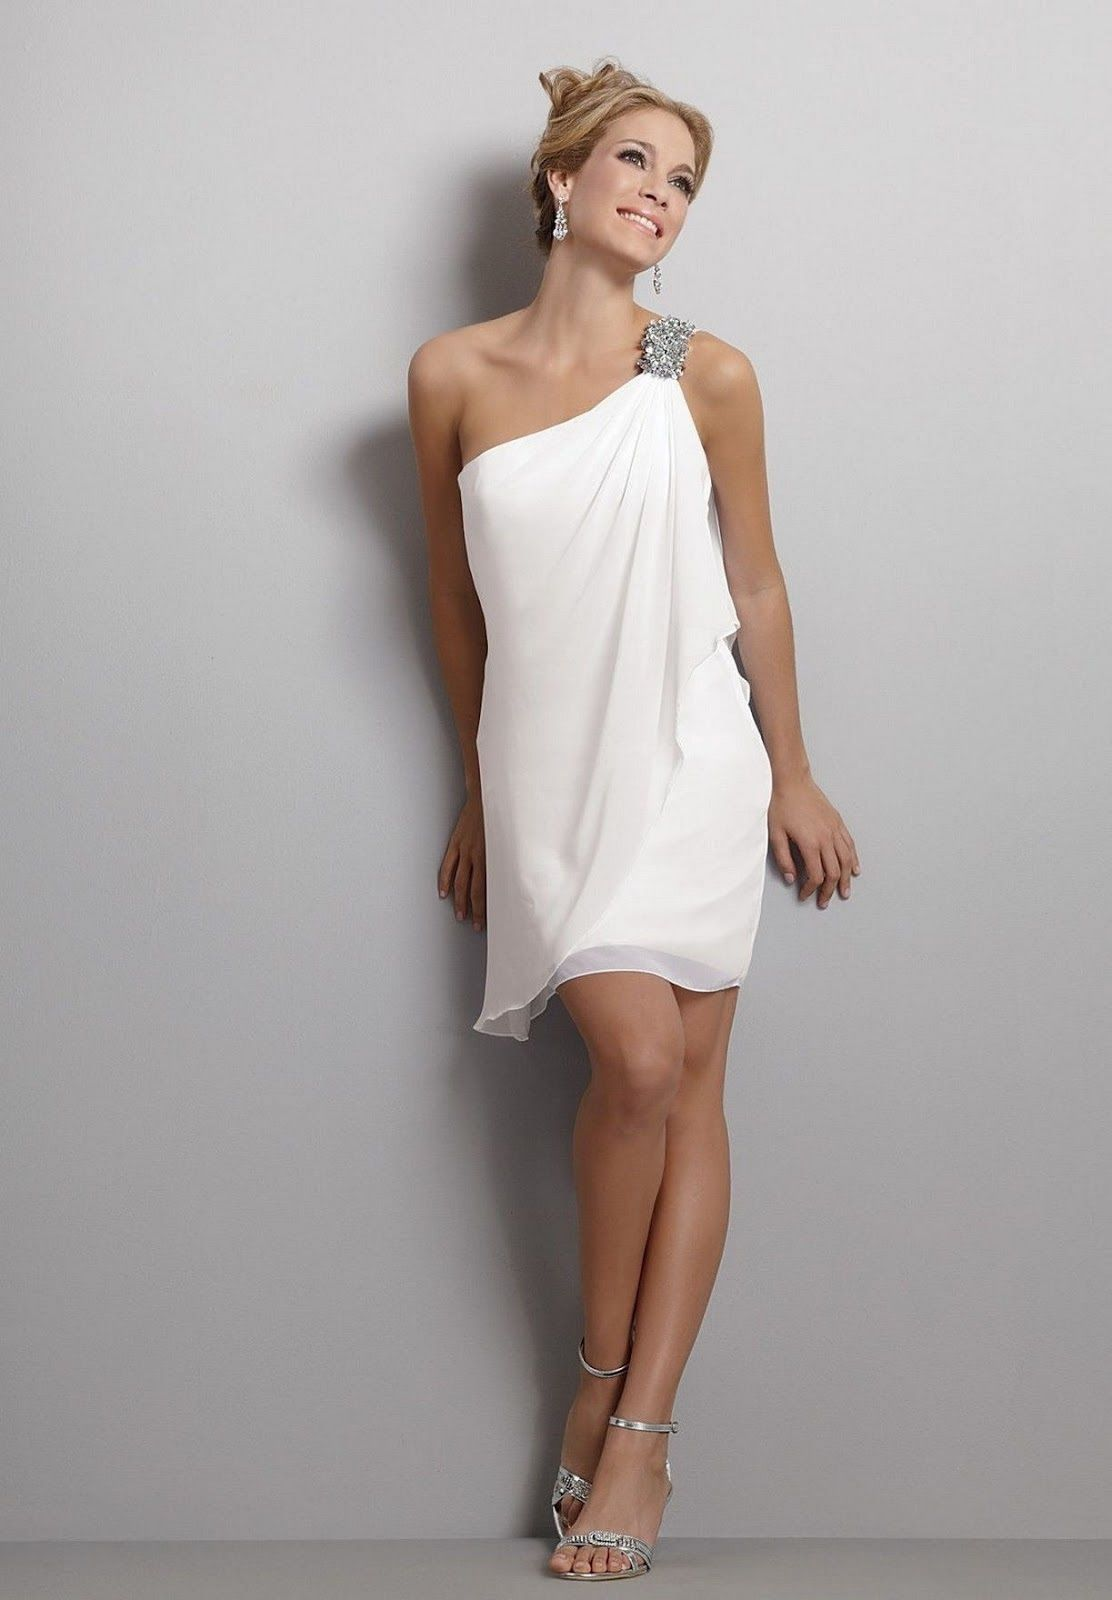 Simple informal short chiffon wedding dress for older brides over